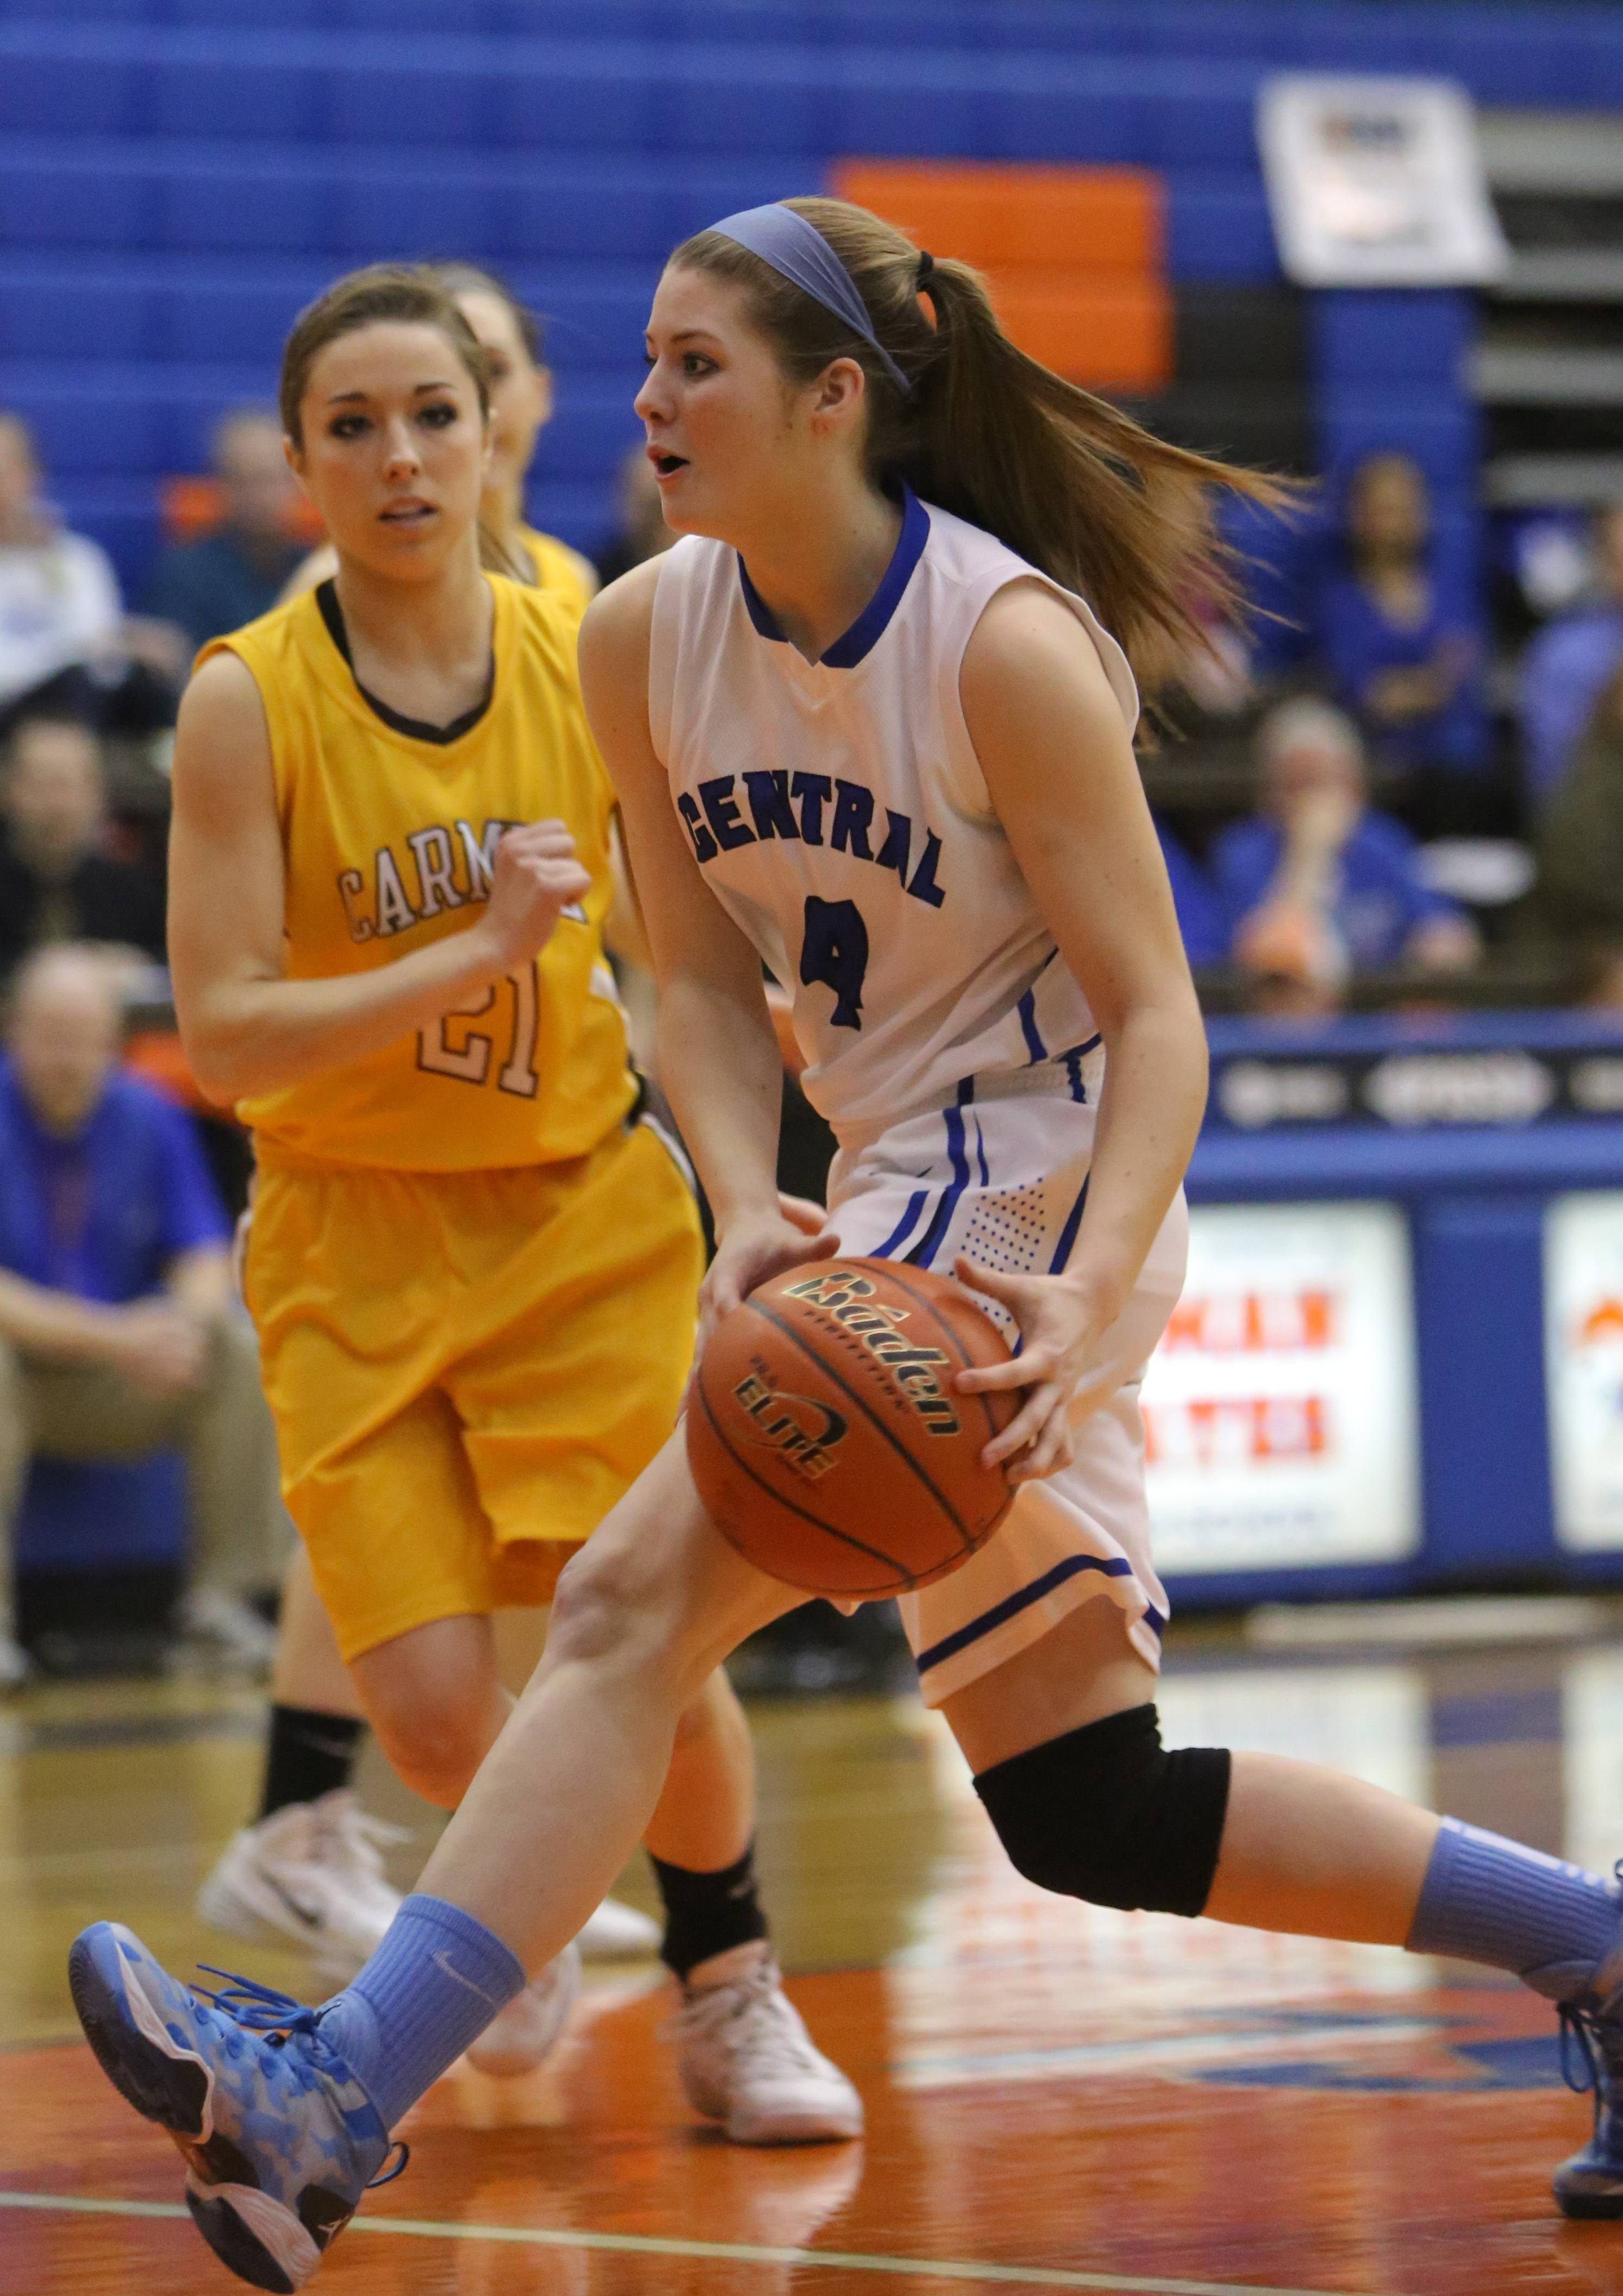 Images from the Carmel vs. Burlington Central girls basketball game on Monday, March 3 in Hoffman Estates.